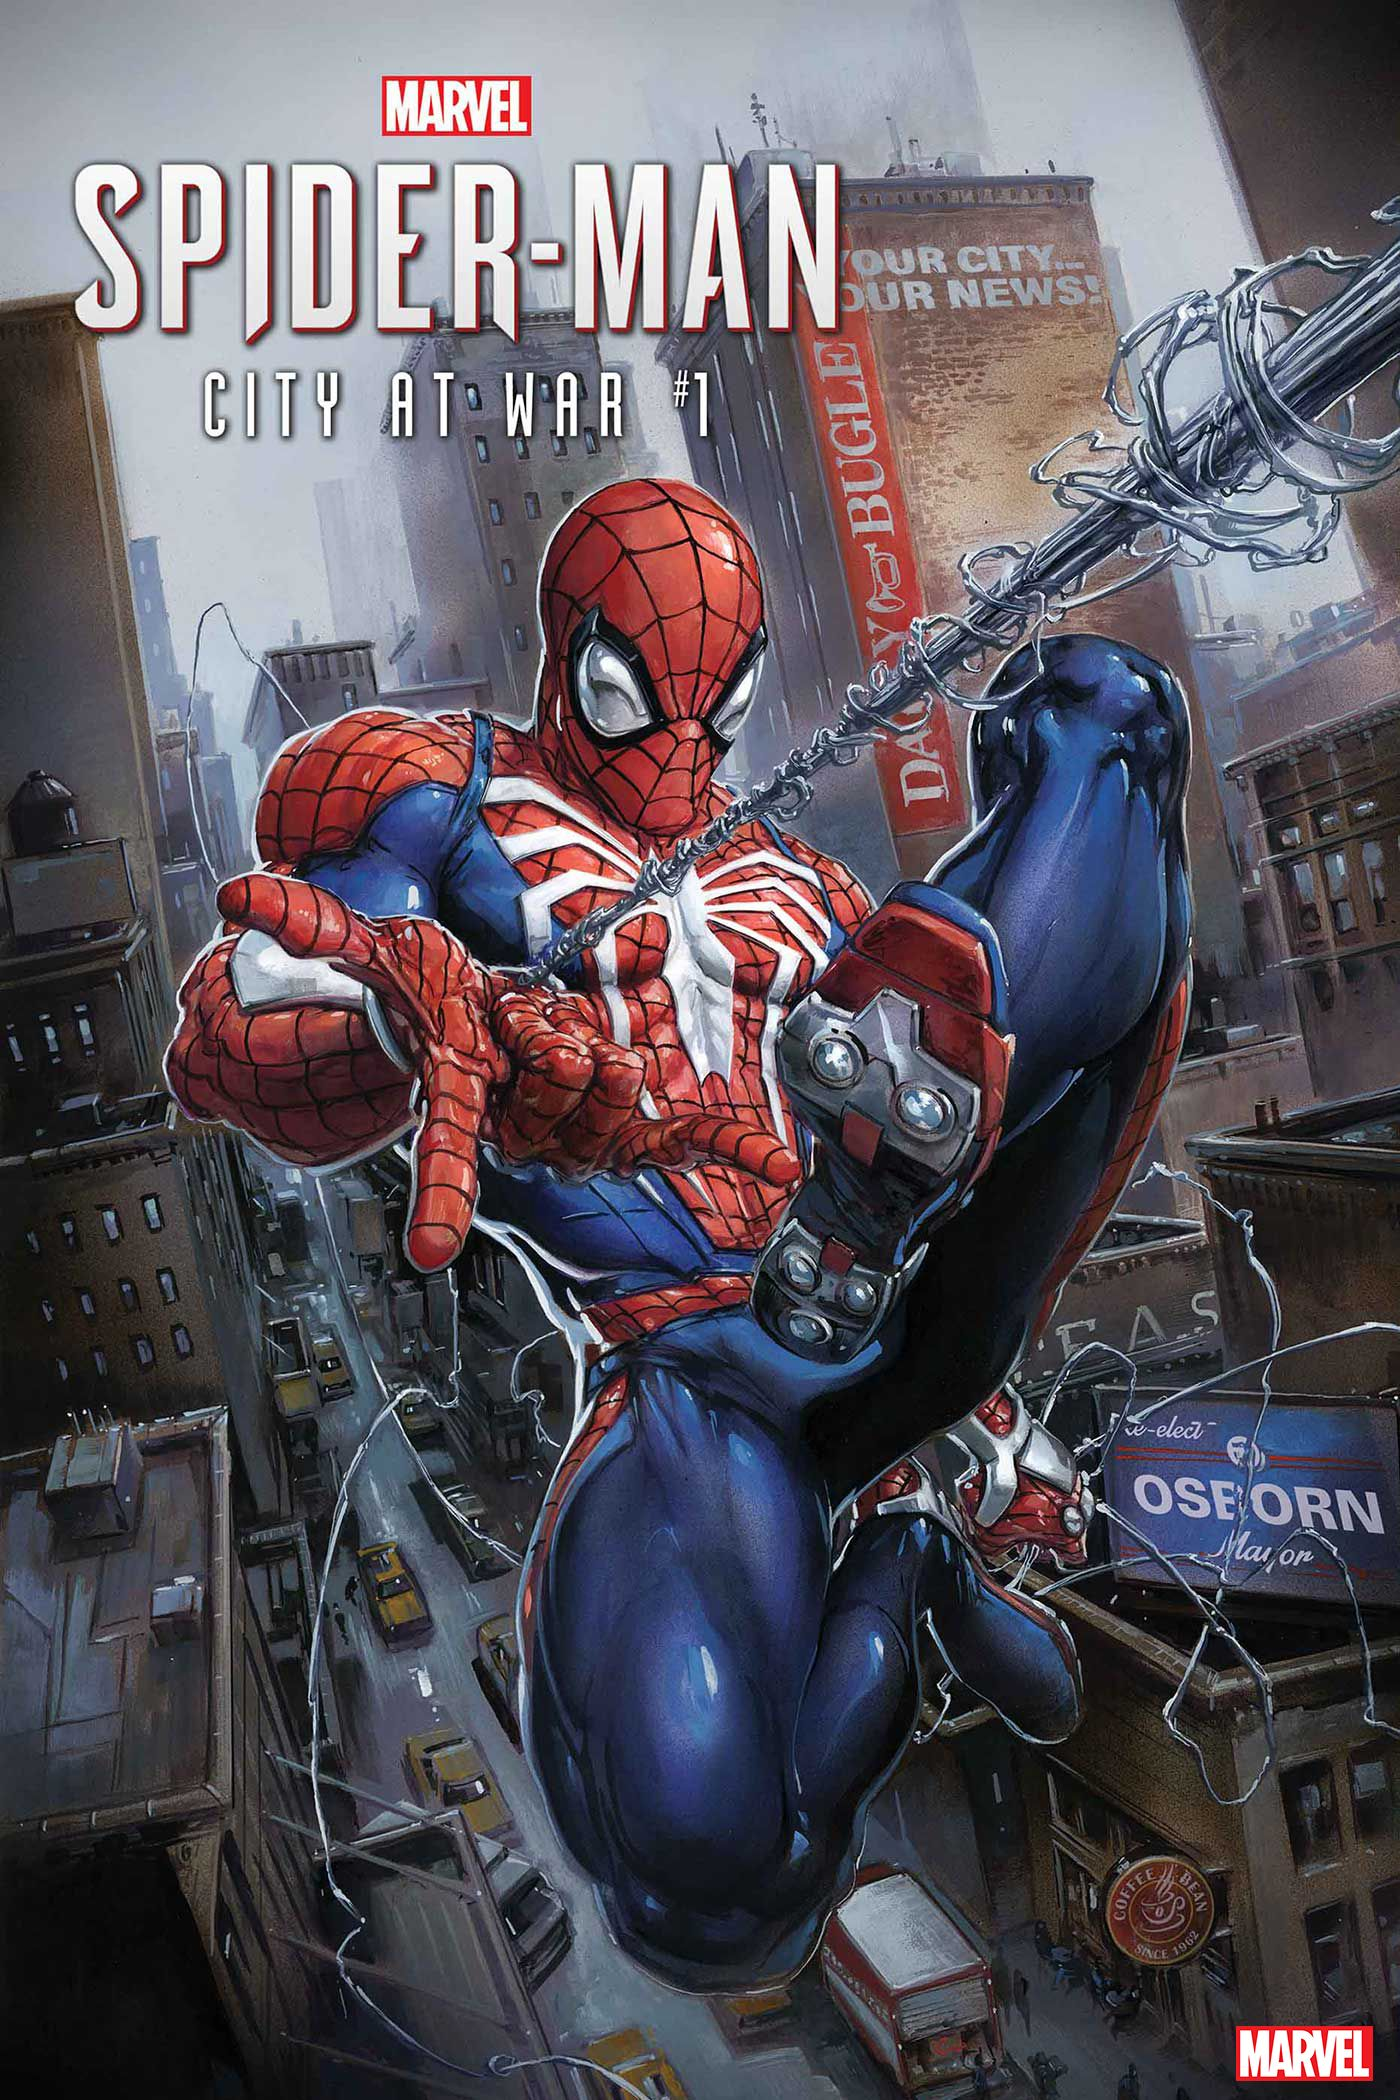 Spider-Man: City at War #1 (Too) Faithfully Adapts Sony's Hit Video Game